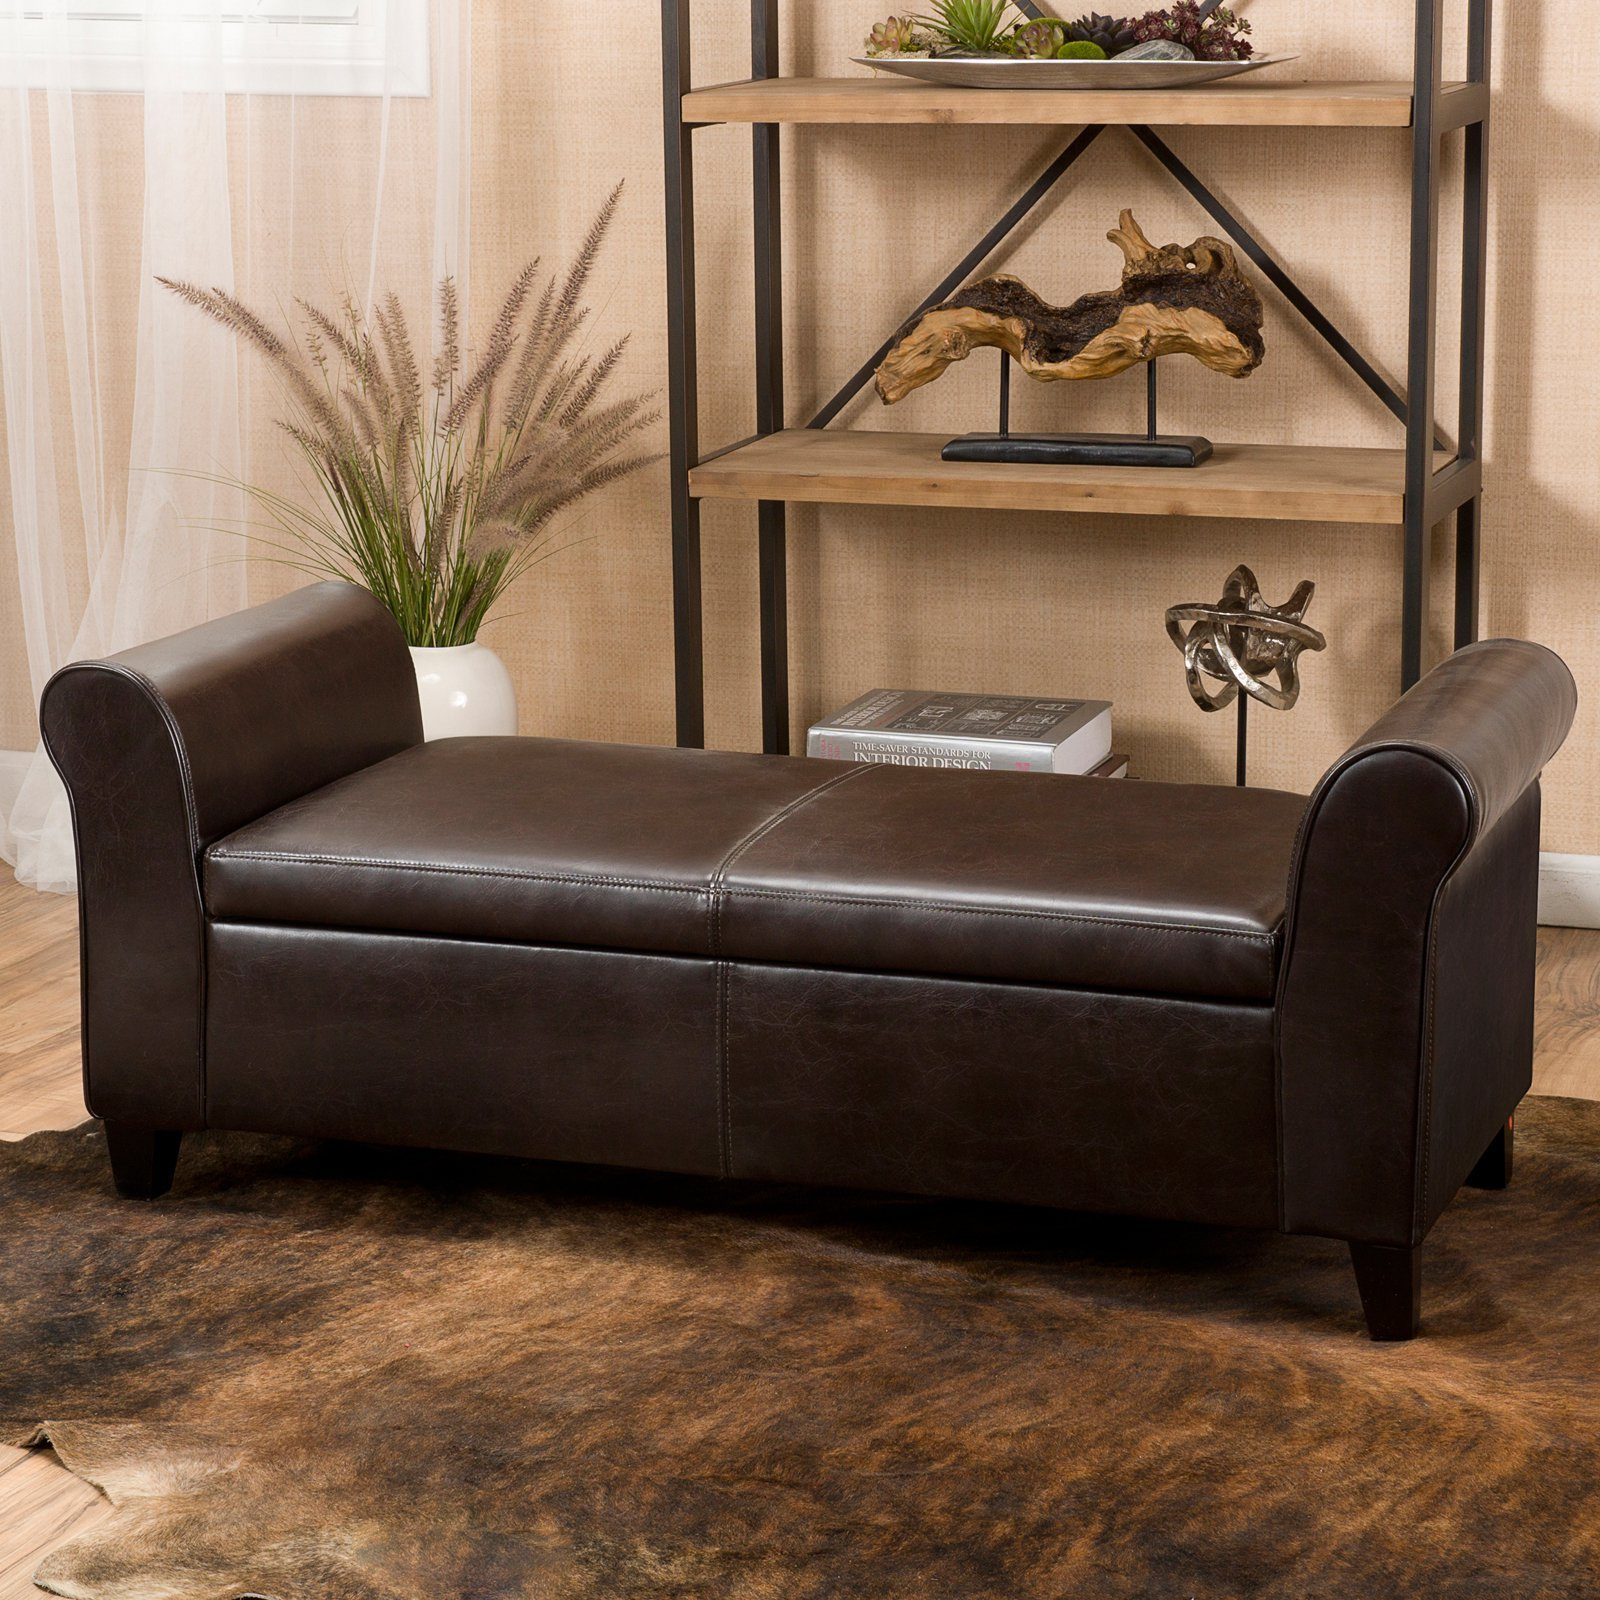 Best Selling Home Martin Faux Leather Bedroom Bench With With Pictures